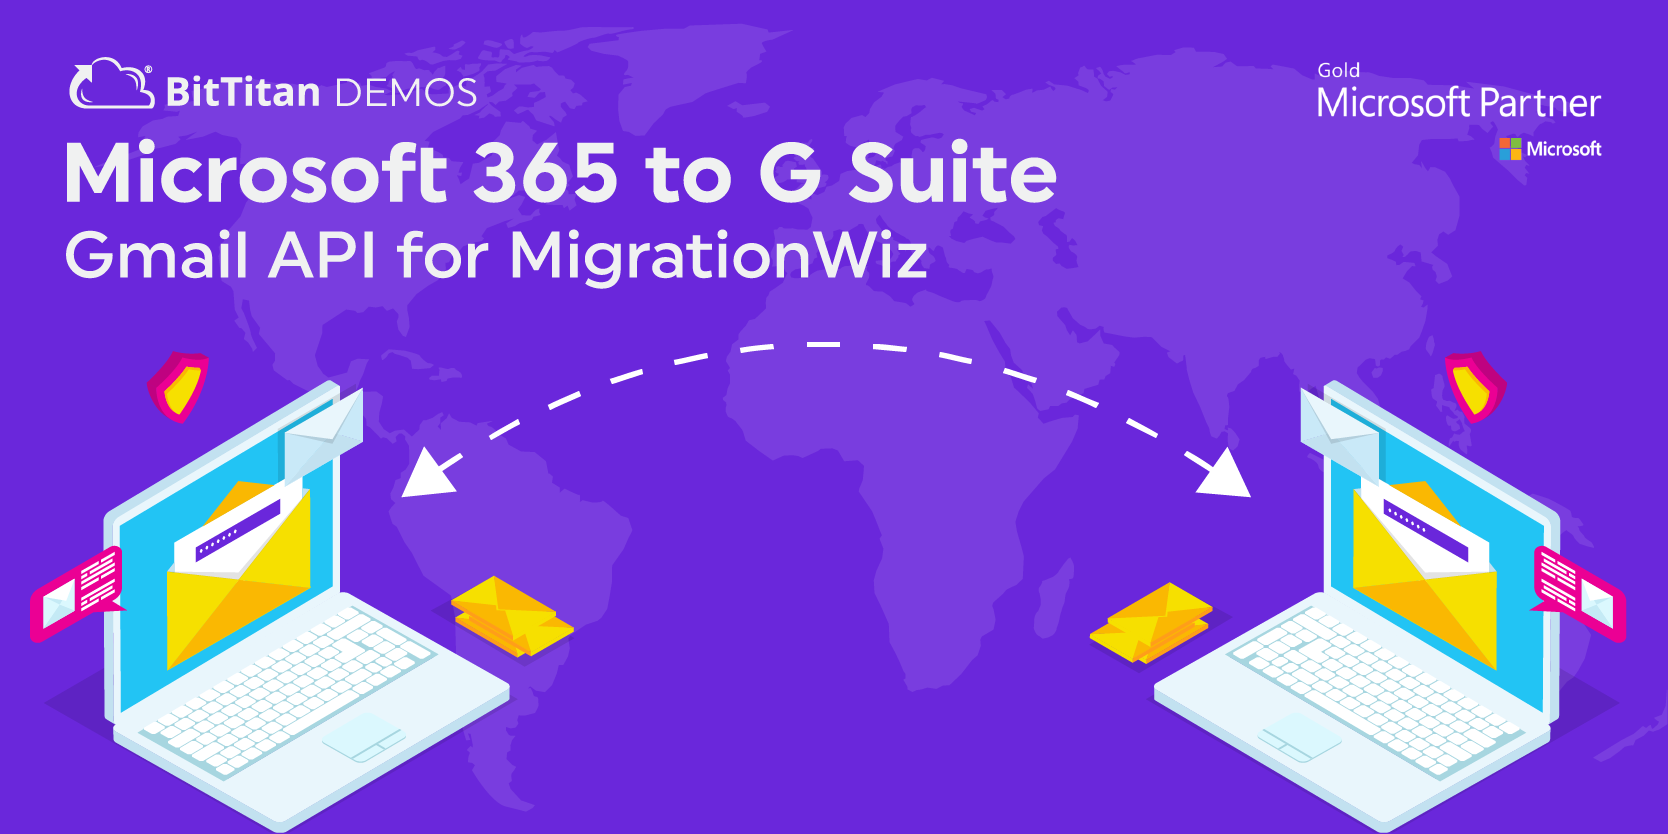 Microsoft 365 to G Suite: Gmail API for MigrationWiz